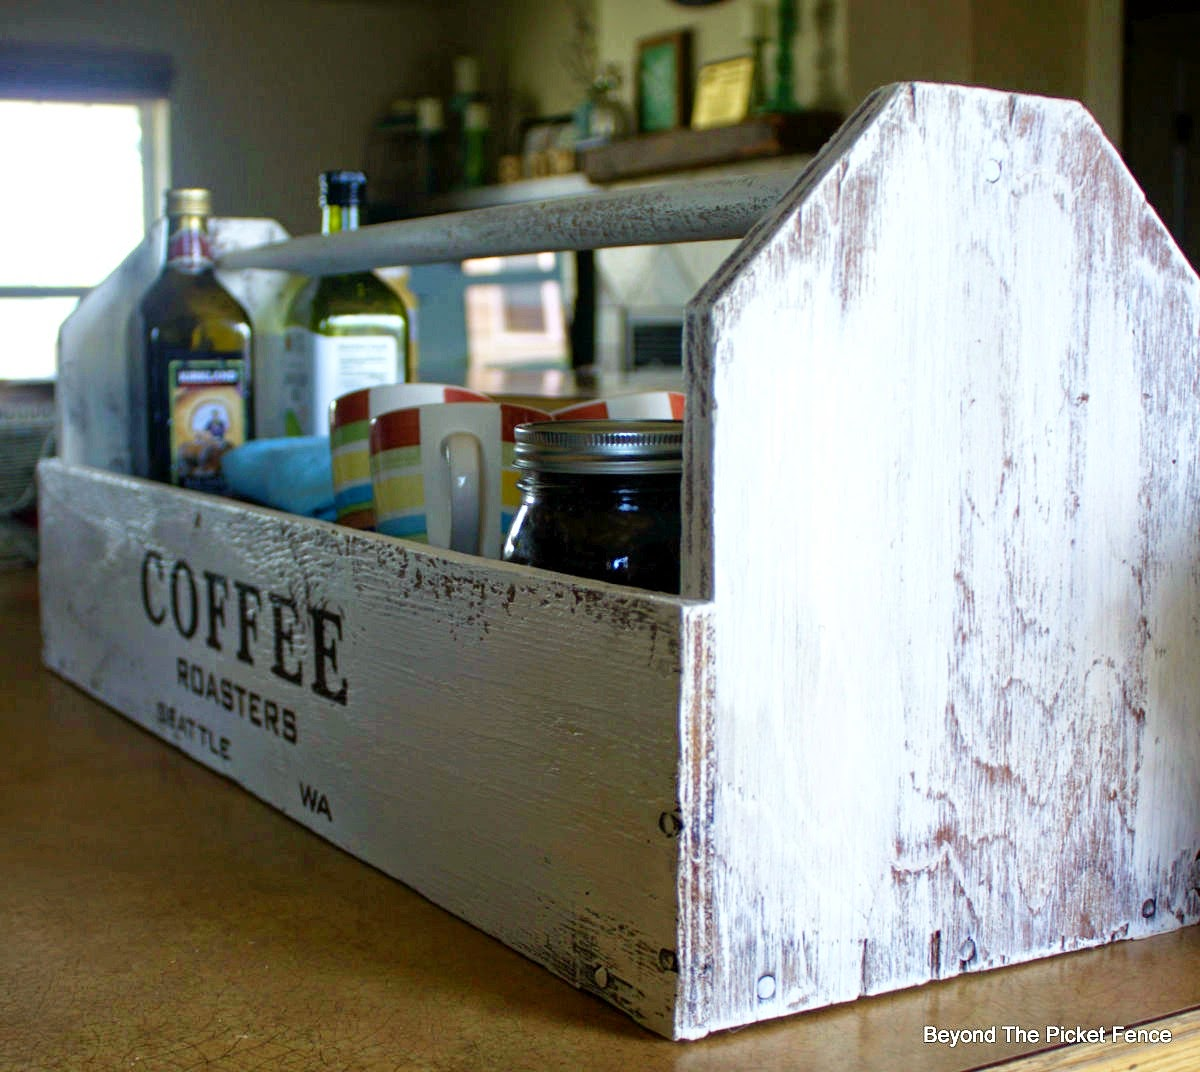 old sign, stencils, toolbox, coffee sign, paint, repurposed, beyond the picket fence,http://bec4-beyondthepicketfence.blogspot.com/2015/04/coffee-toolbox.html